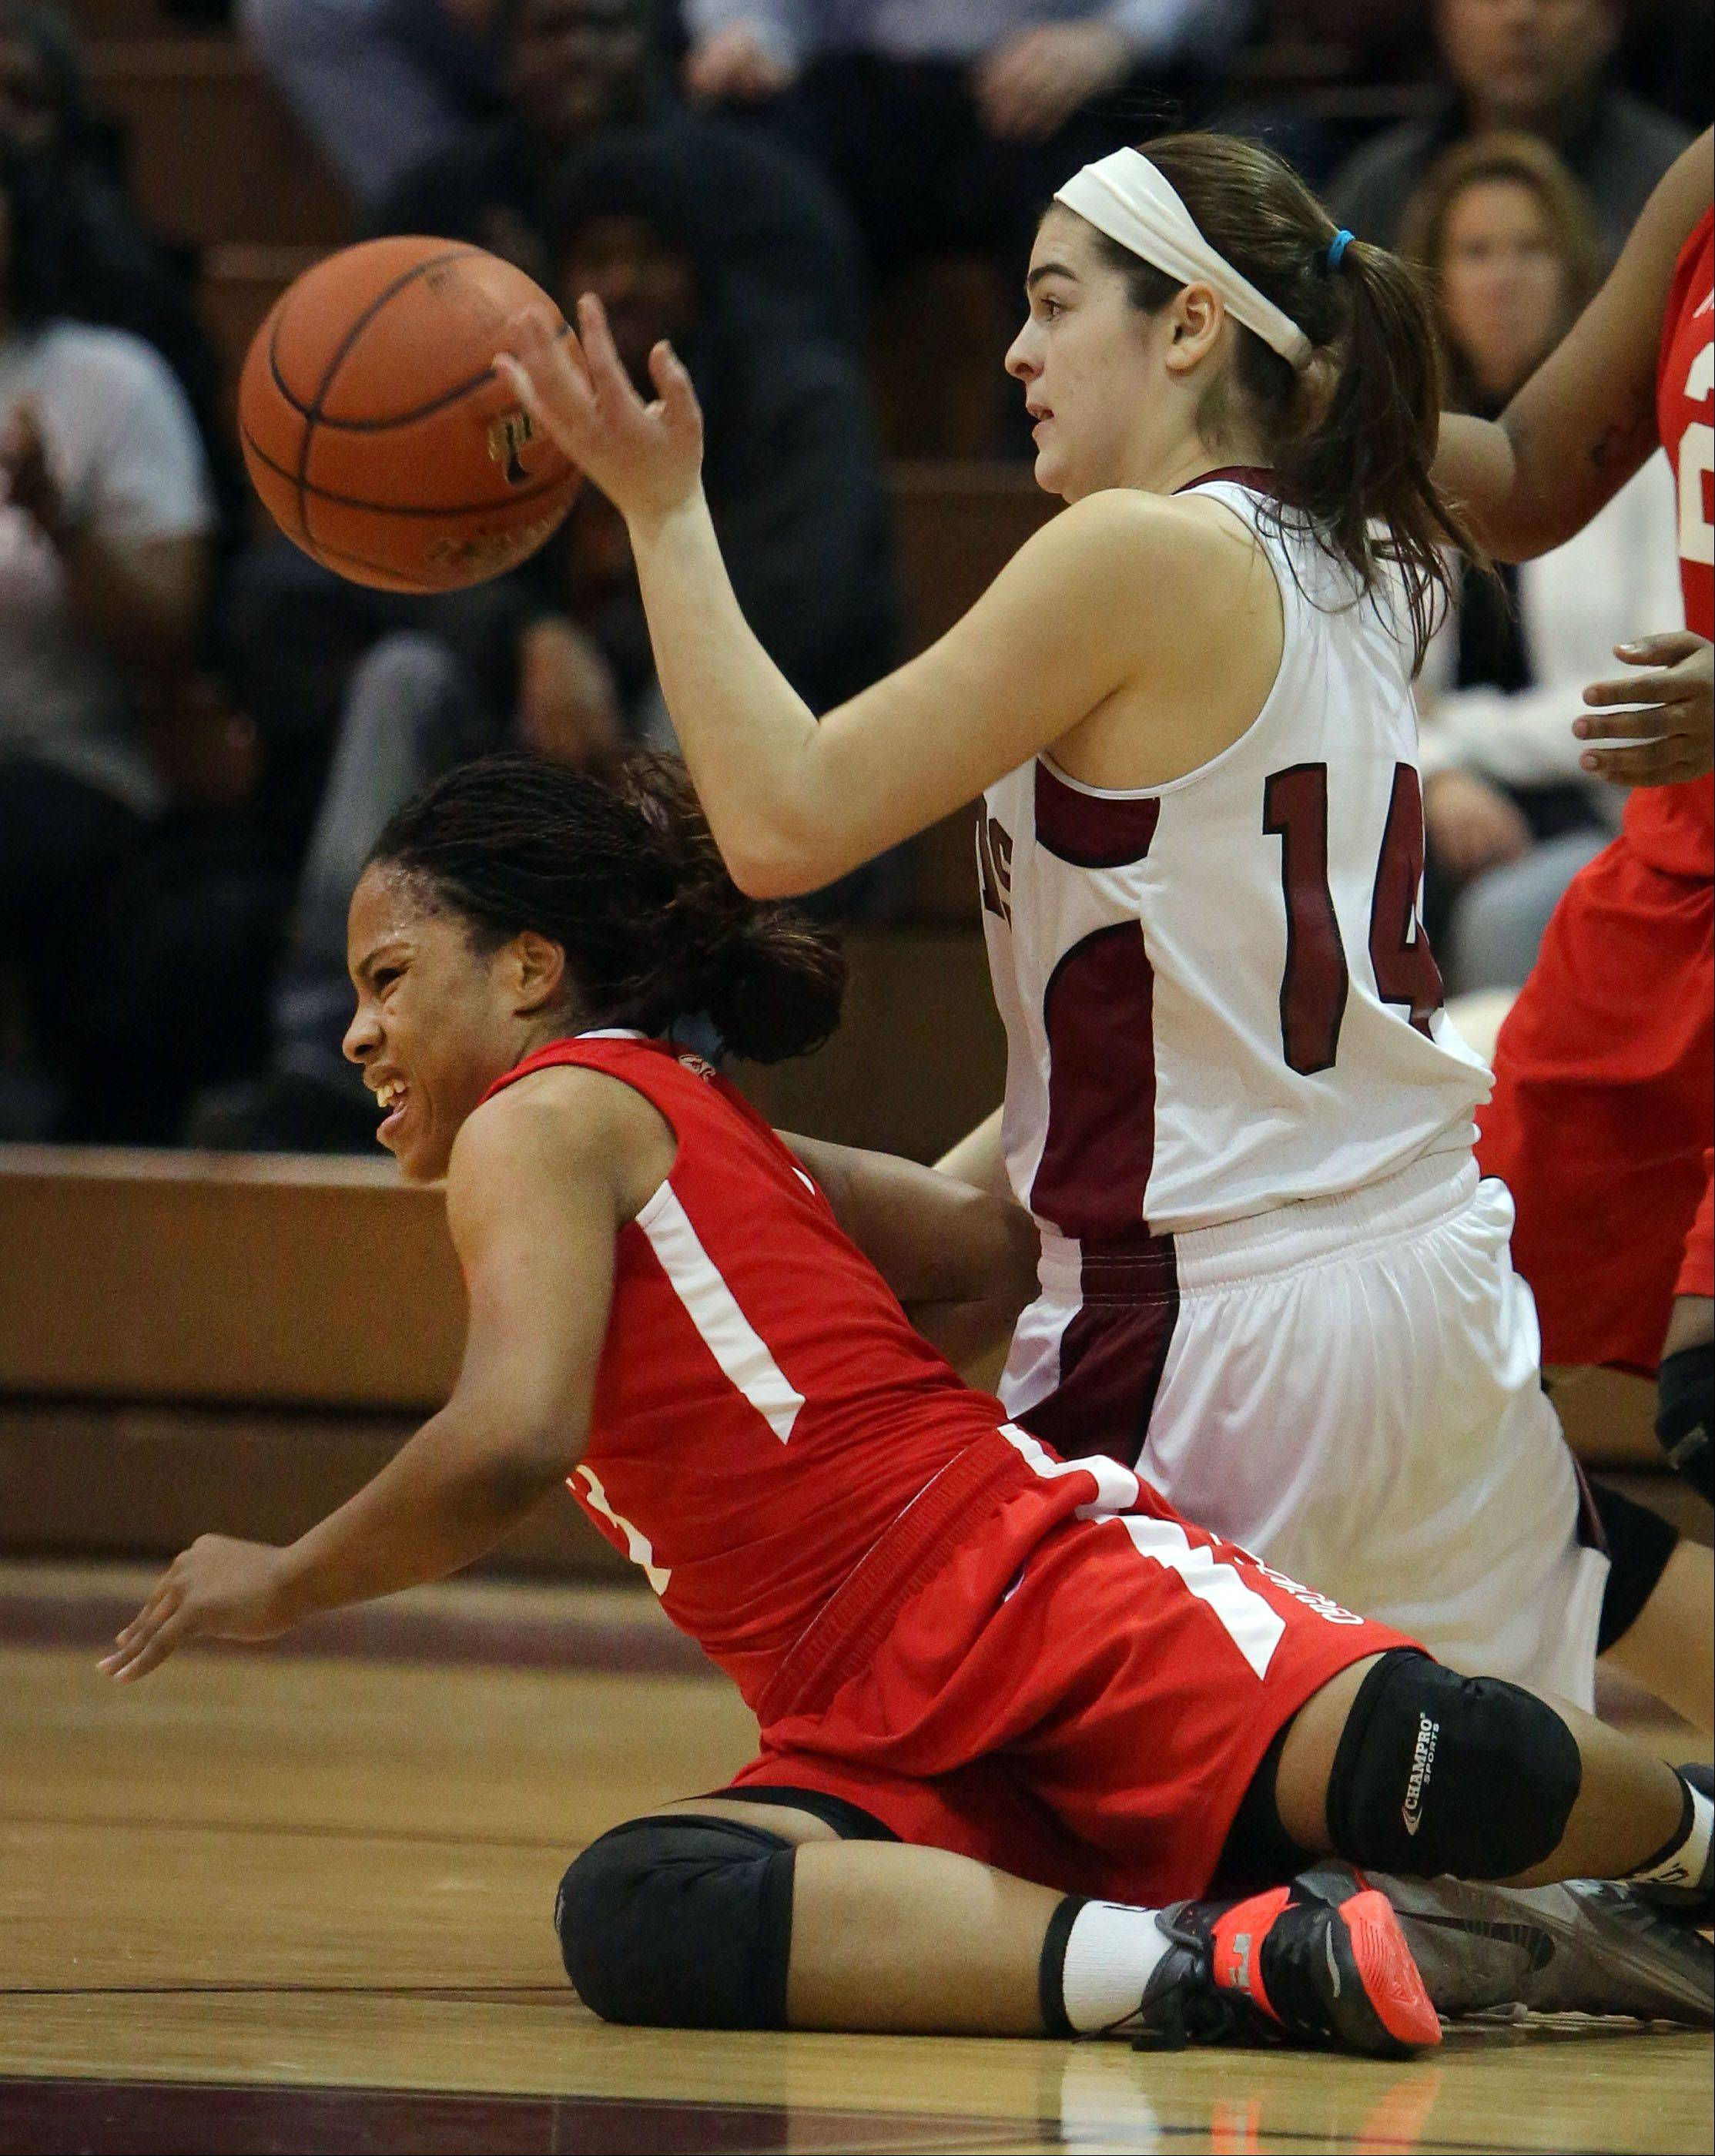 Antioch's Amy Reiser, right, and North Chicago's Alexis Means scramble for a loose ball.